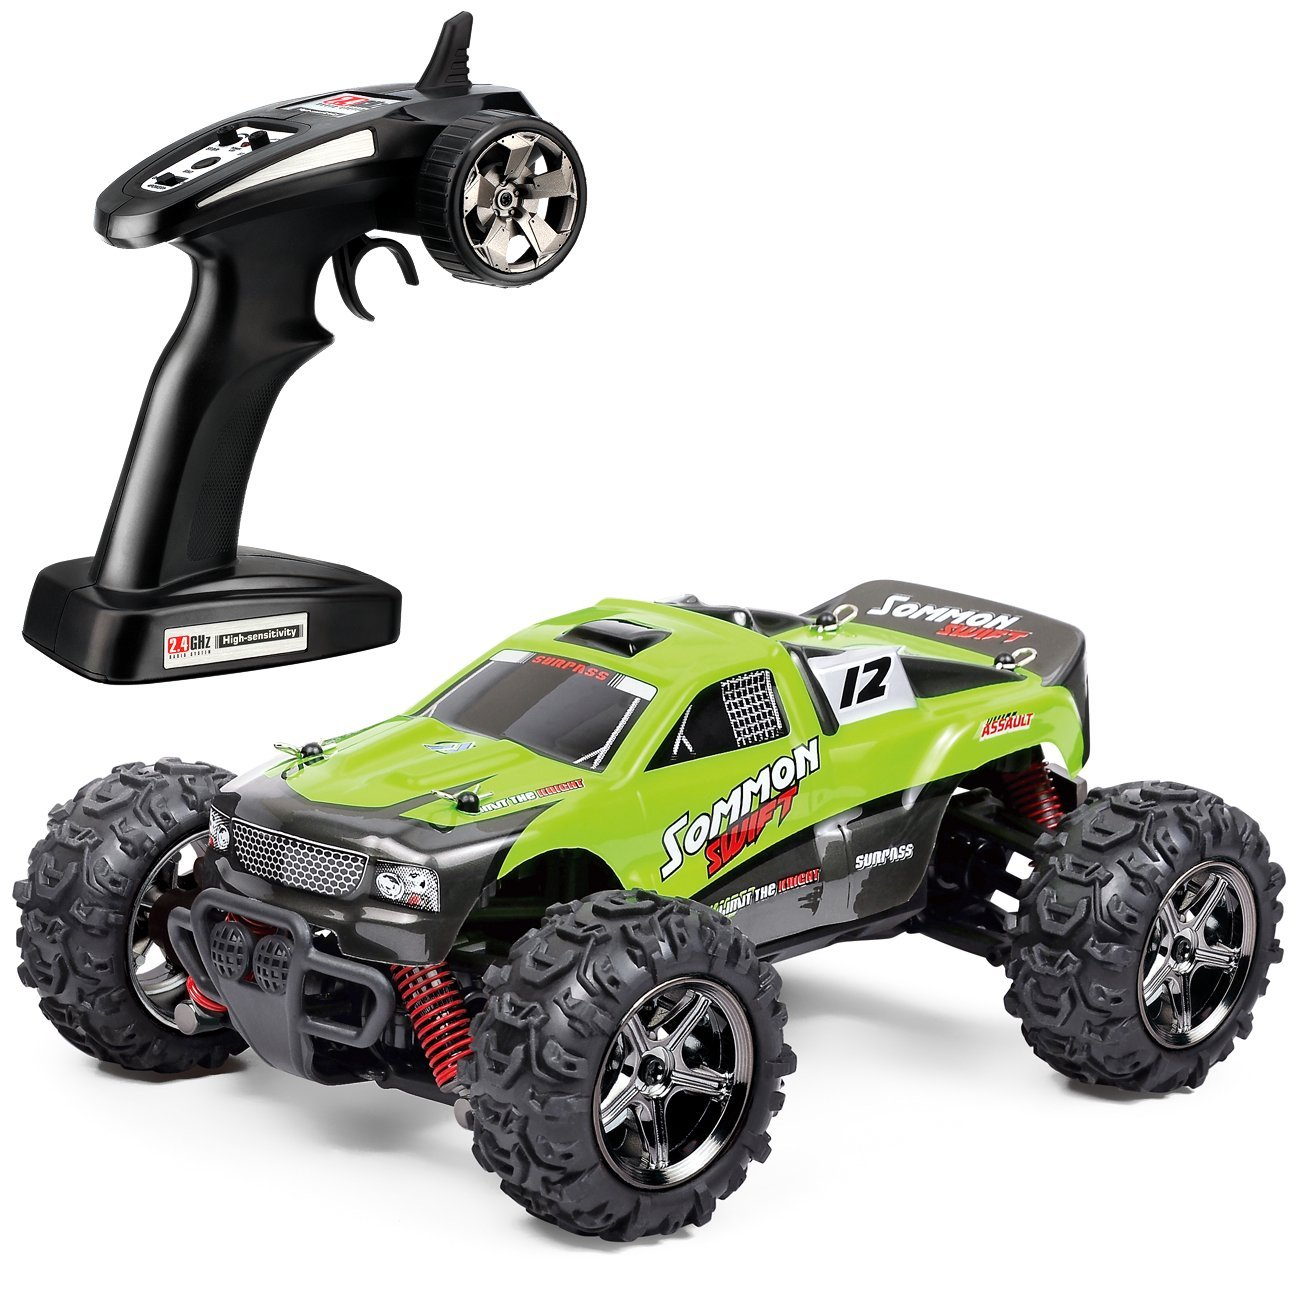 Tozo C1142 Rc Car Sommon Swift High Sd 30mph 4x4 Fast Race Cars1 24